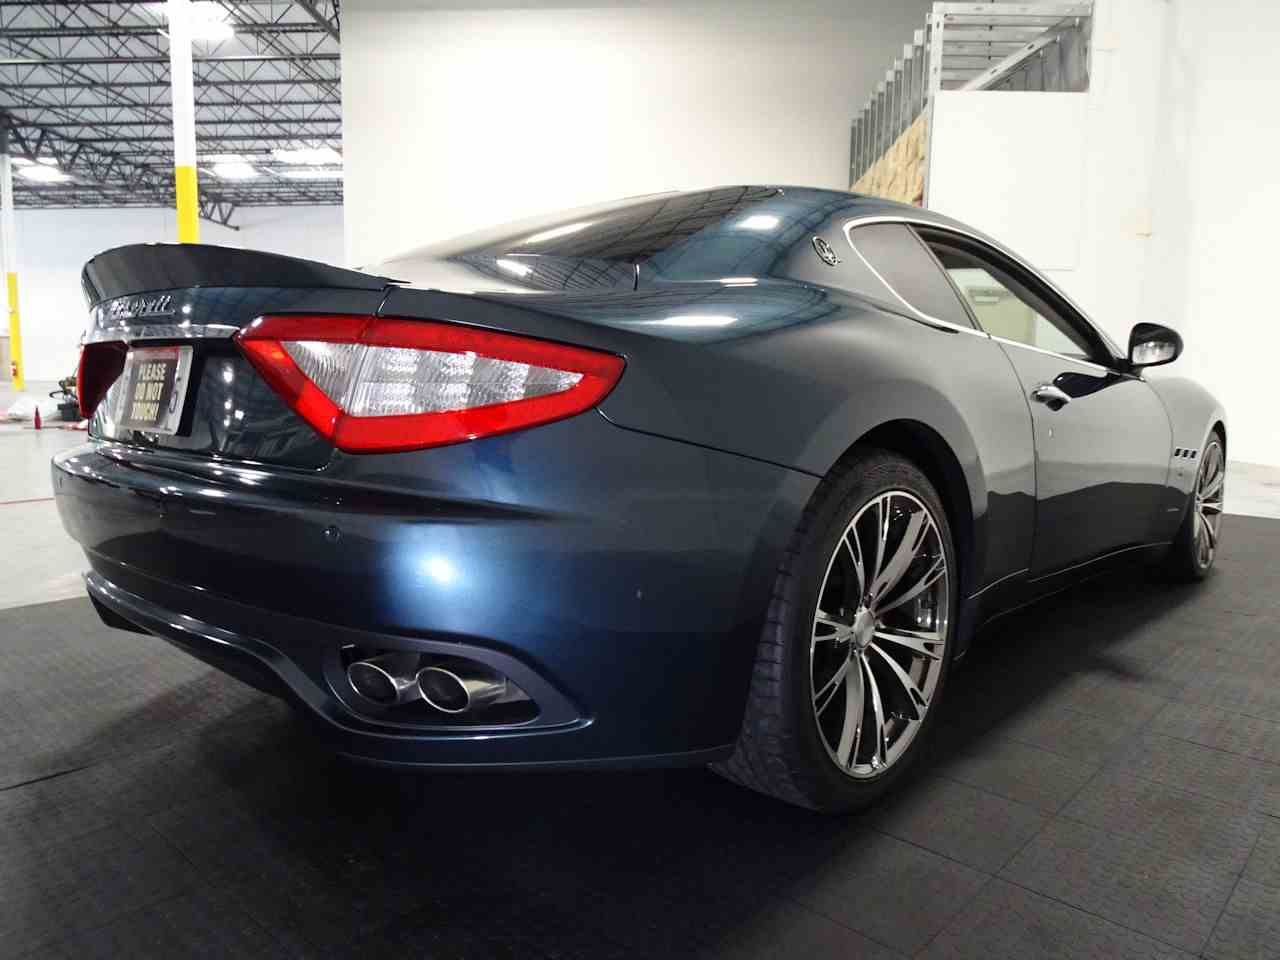 Large Picture of '08 Maserati GranTurismo located in Houston Texas - $42,995.00 Offered by Gateway Classic Cars - Houston - MO4H